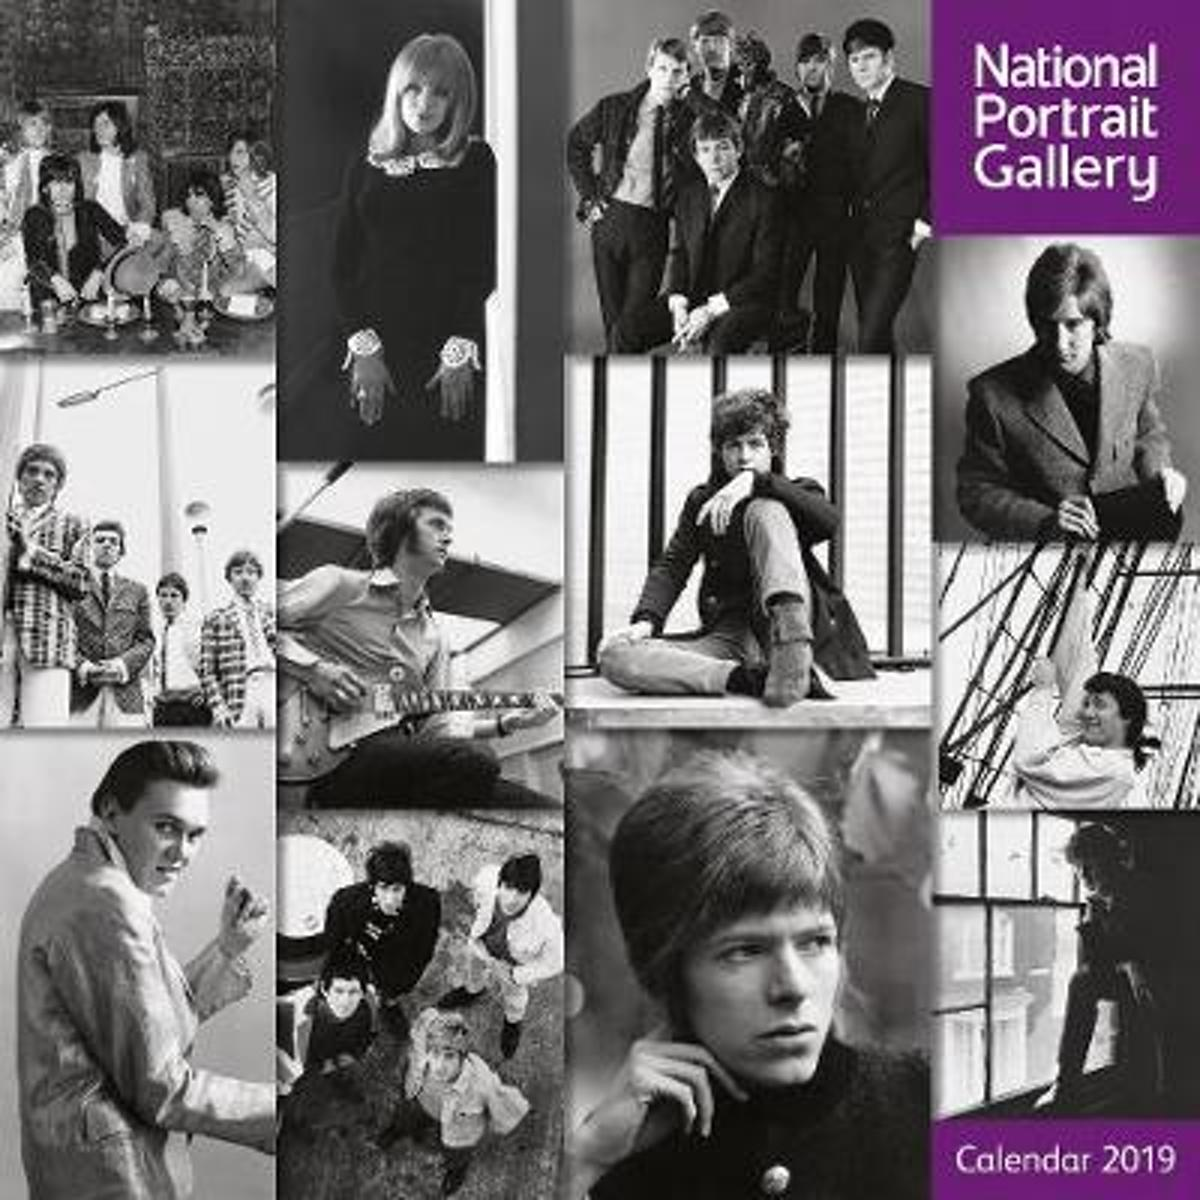 National Portrait Gallery - 60S Rock Icons Wall Calendar 2019 (Art Calendar)